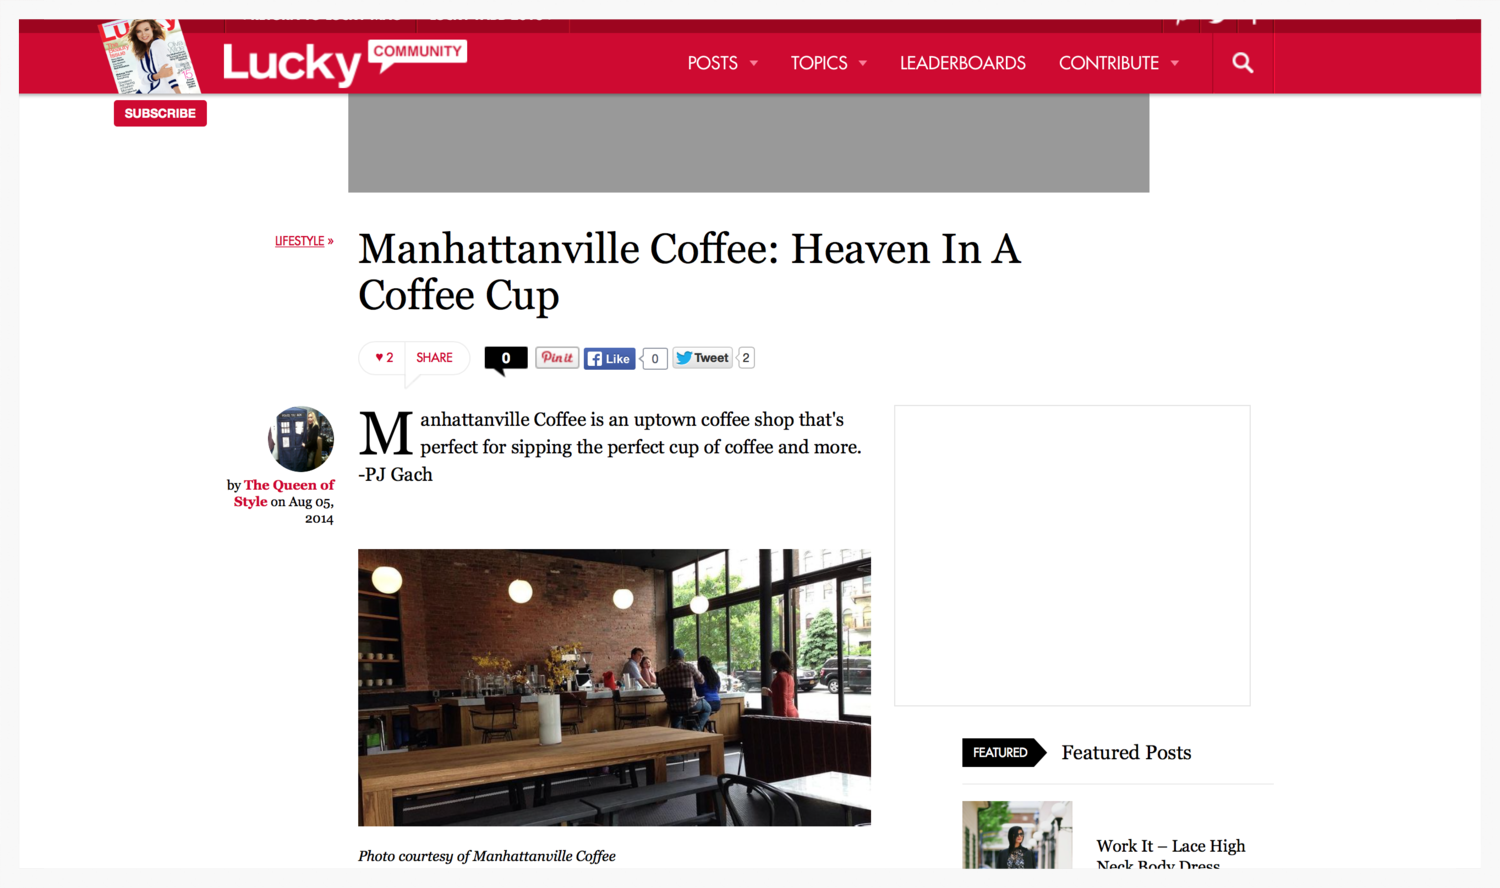 Manhattanville Coffee review by luckymag.com